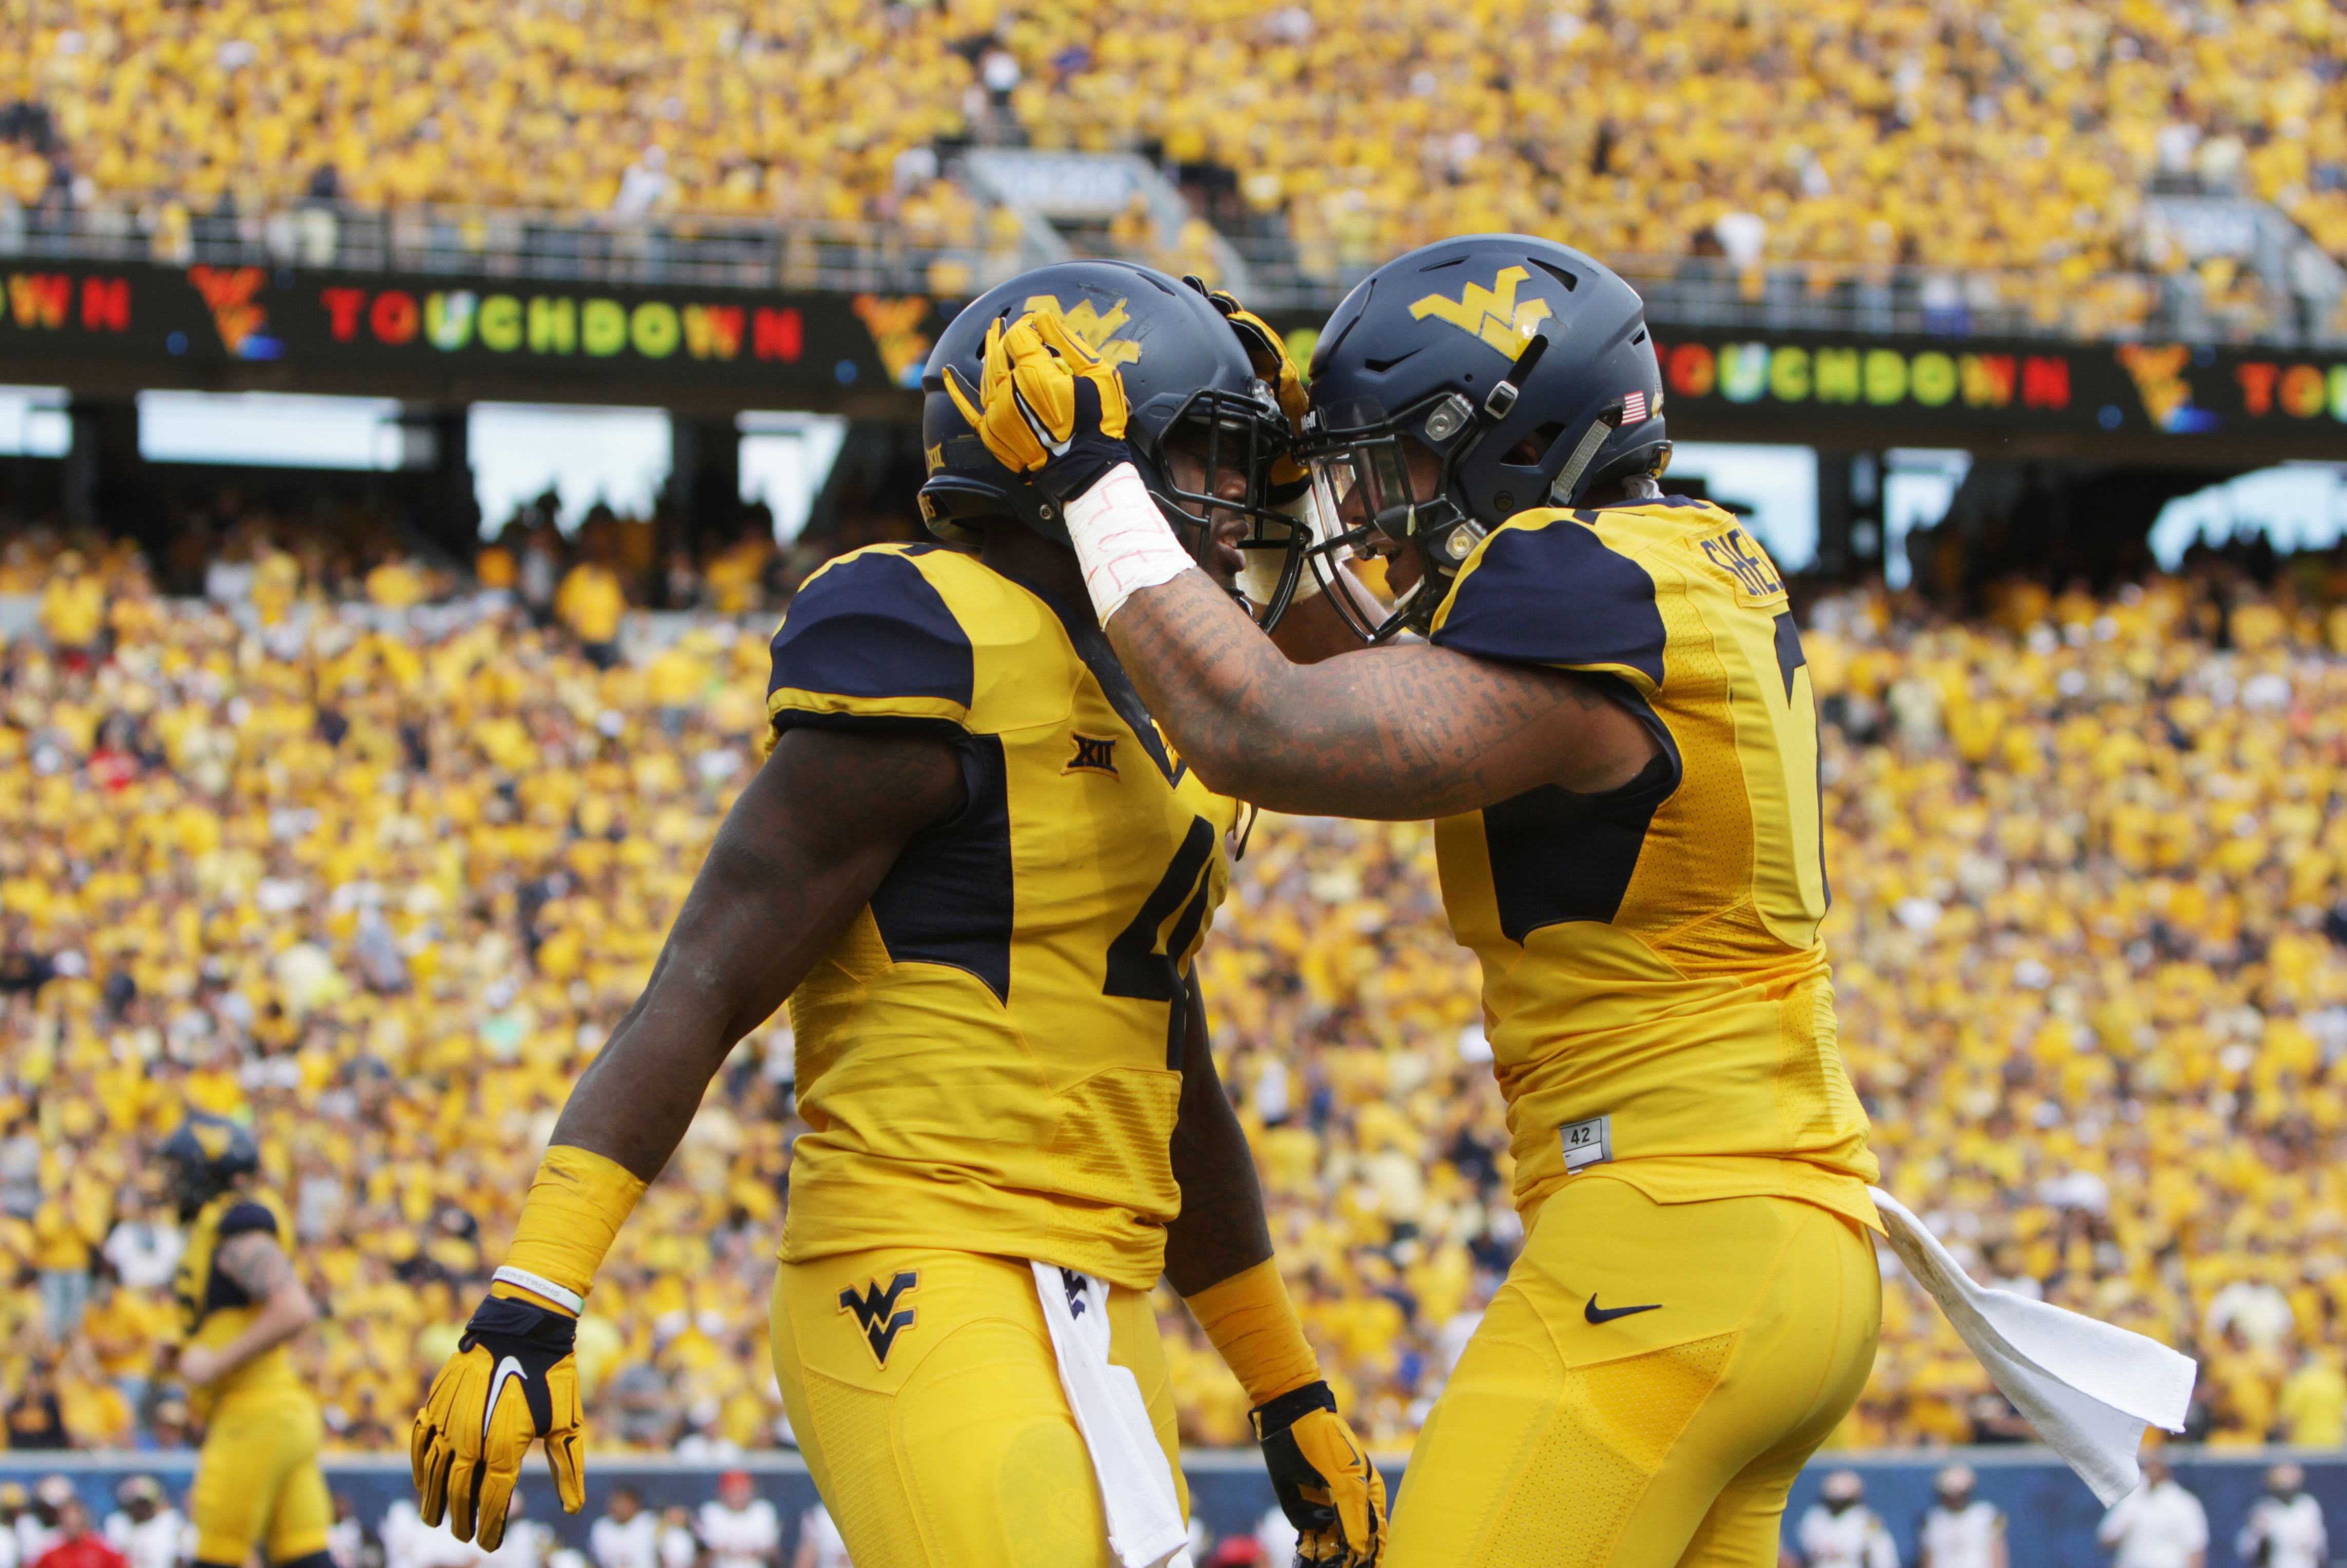 After scoring a touchdown, West Virginia running back Wendell Smallwood (4) celebrates with his teammate West Virginia running back Rushel Shell (7) during the first half of an NCAA college football game against Maryland, Saturday, Sept. 26, 2015, in Morg